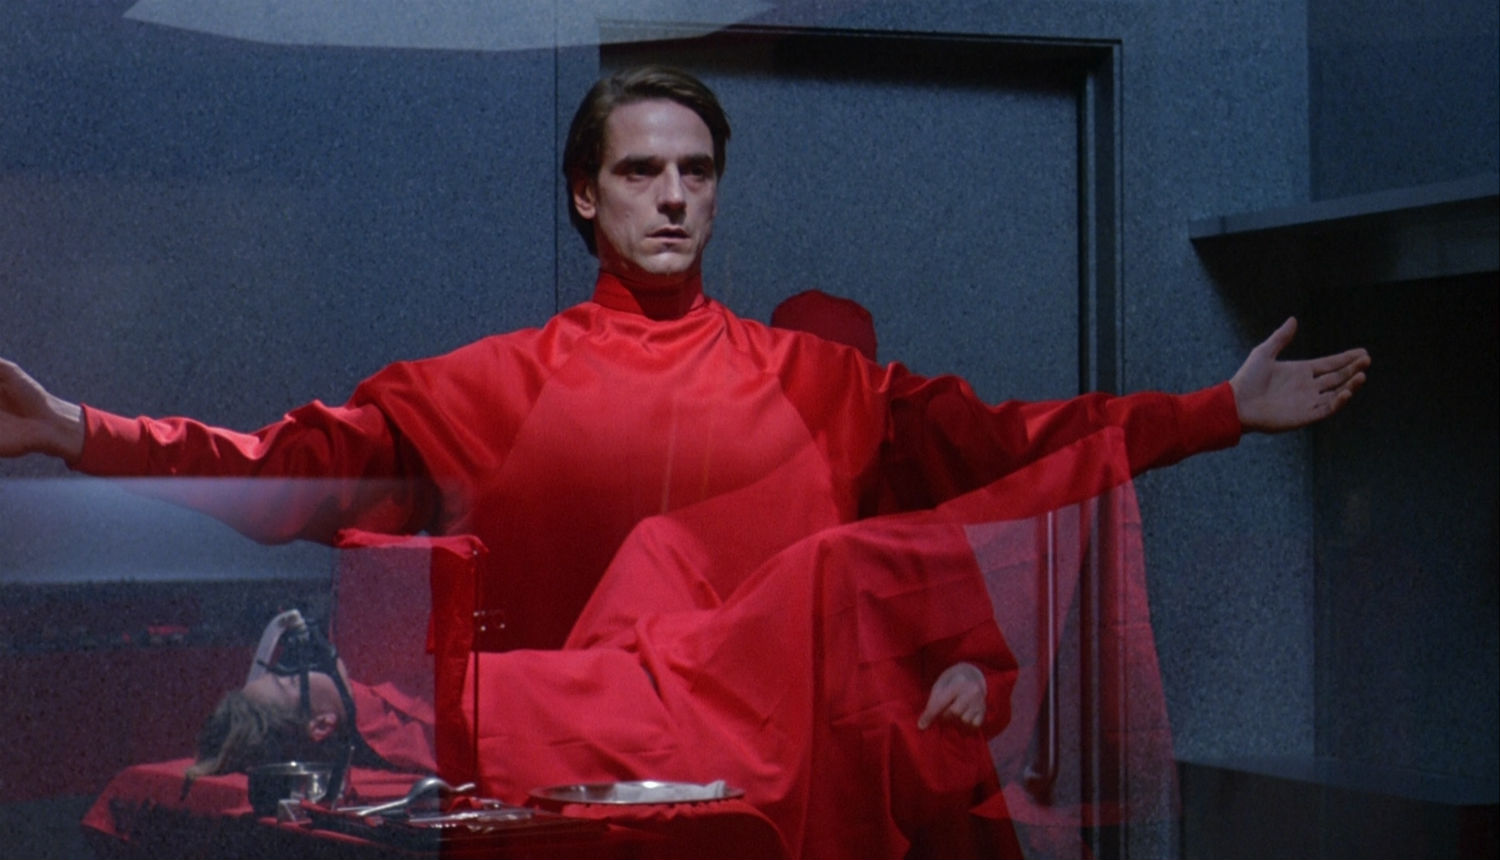 jeremy irons dead ringers david cronenberg body horror cinema